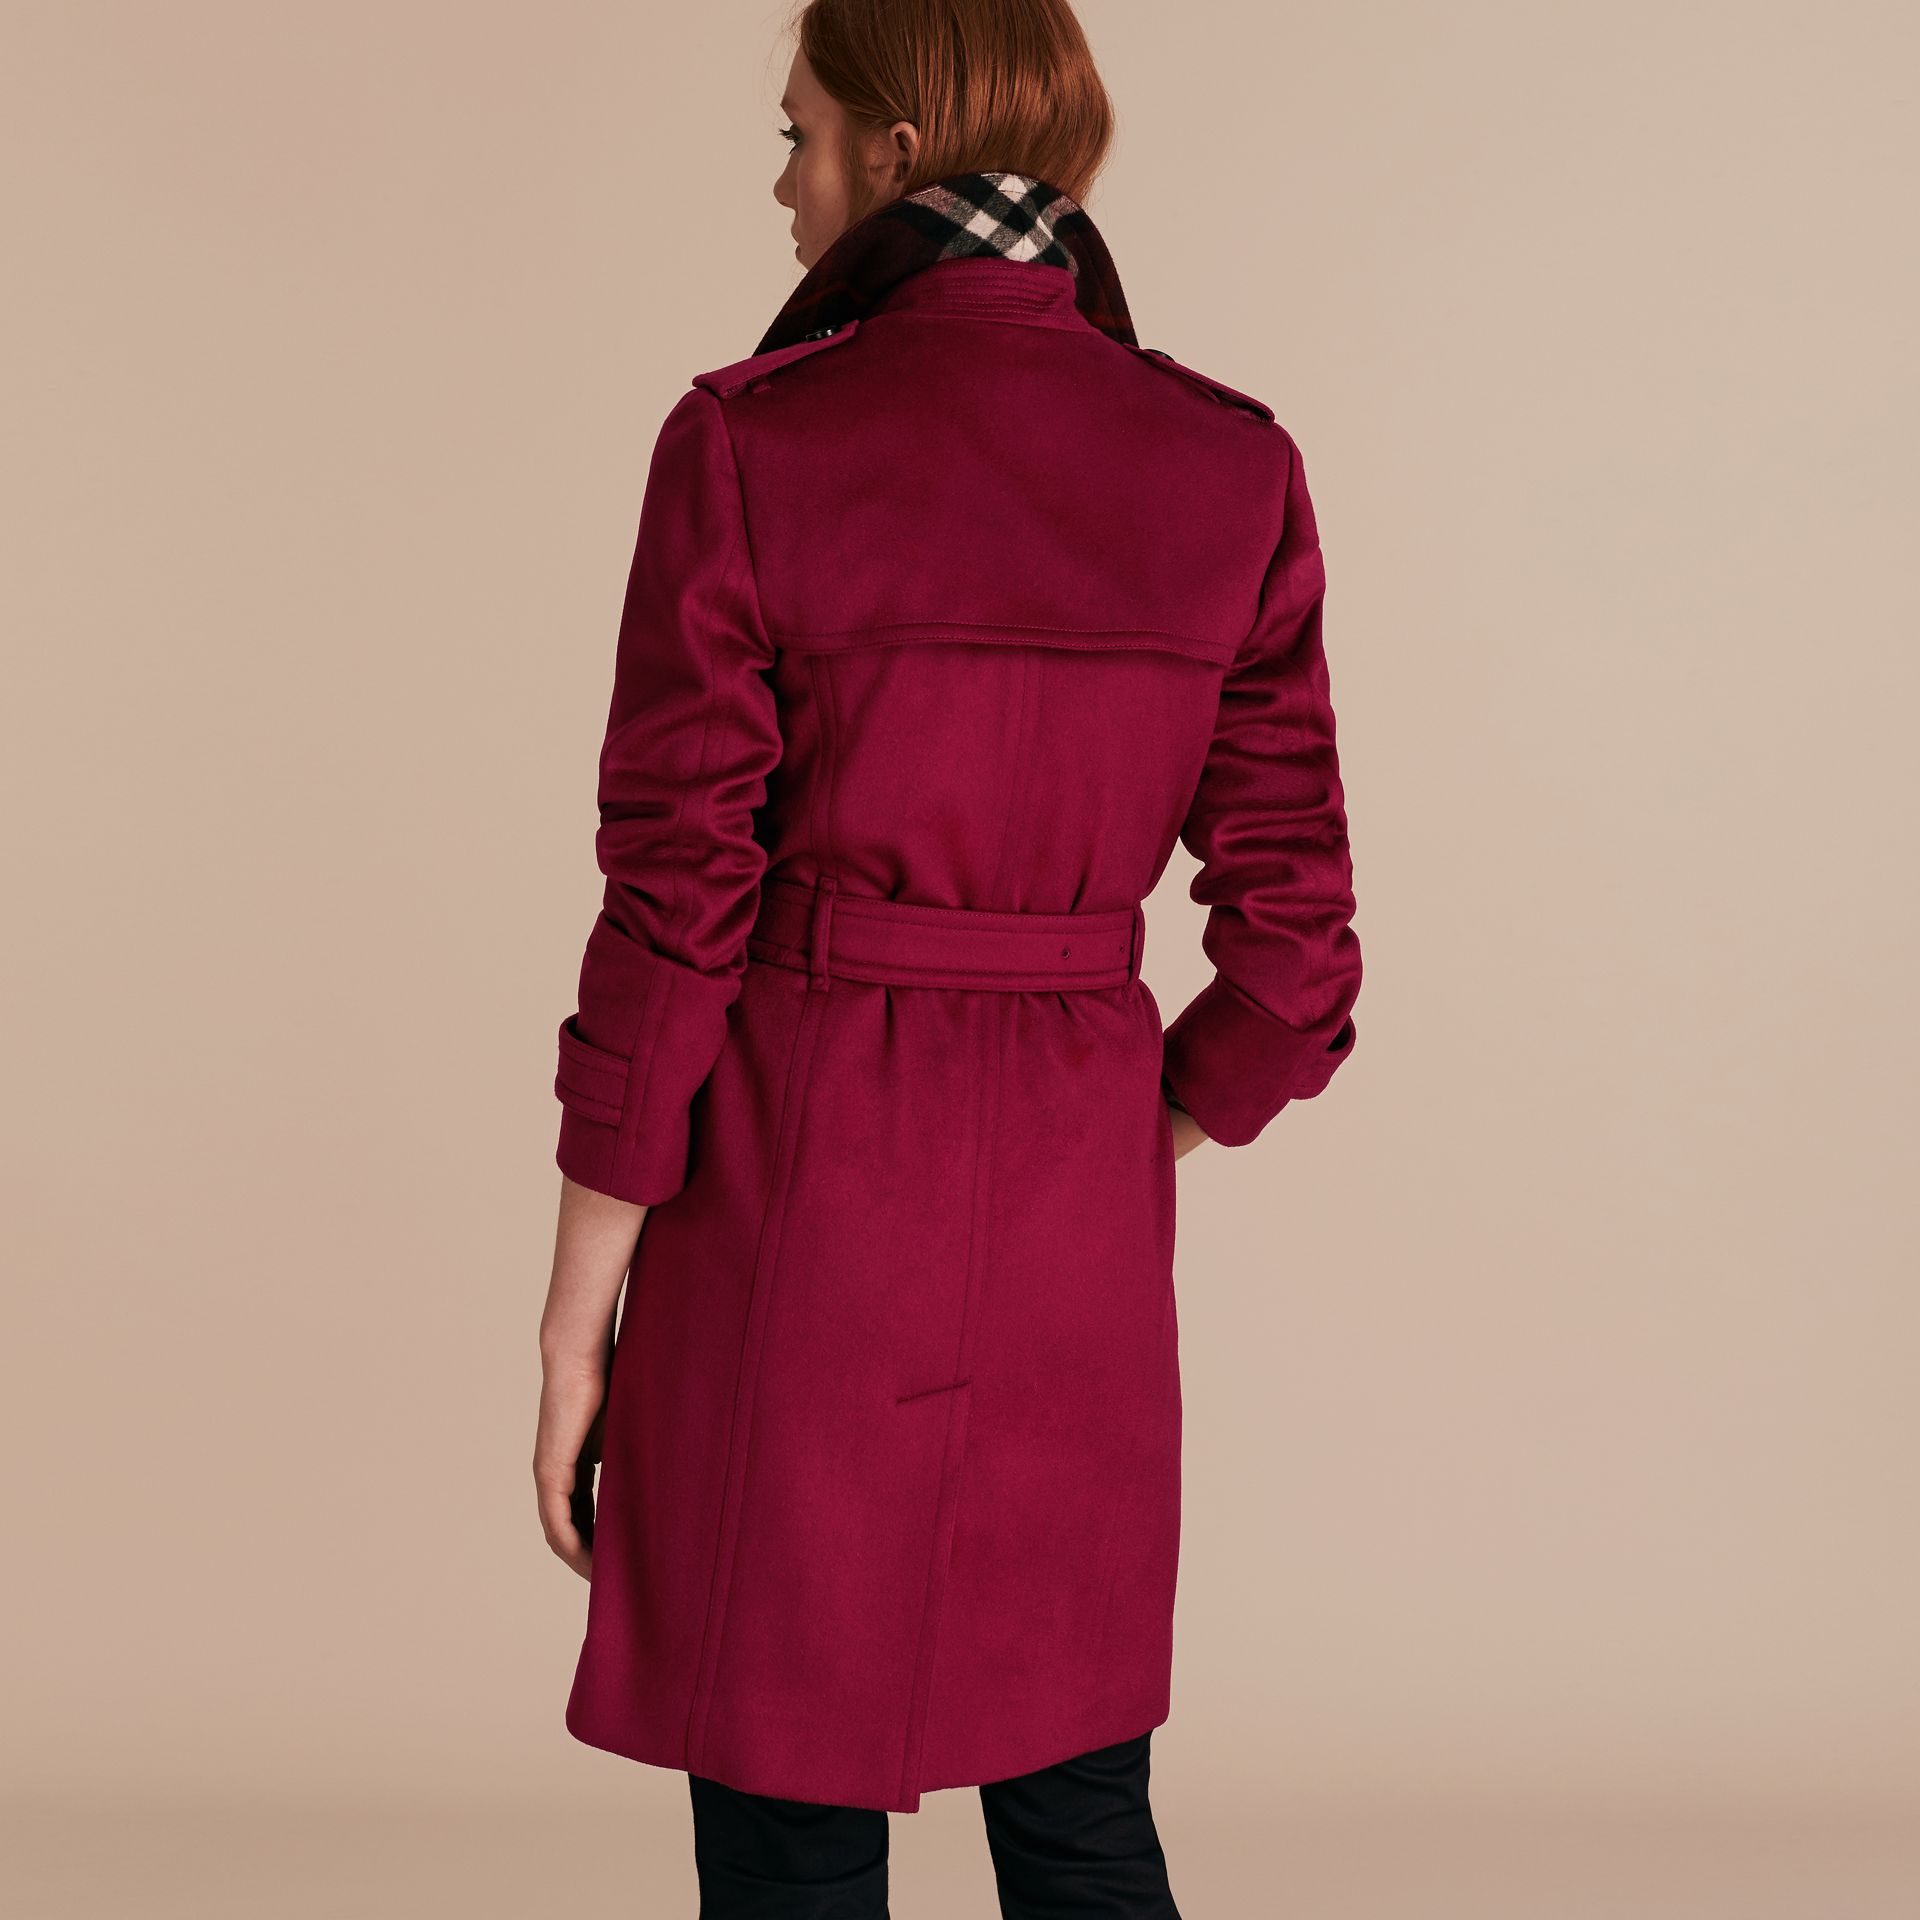 Cherry pink Cashmere Wrap Trench Coat Cherry Pink - gallery image 3